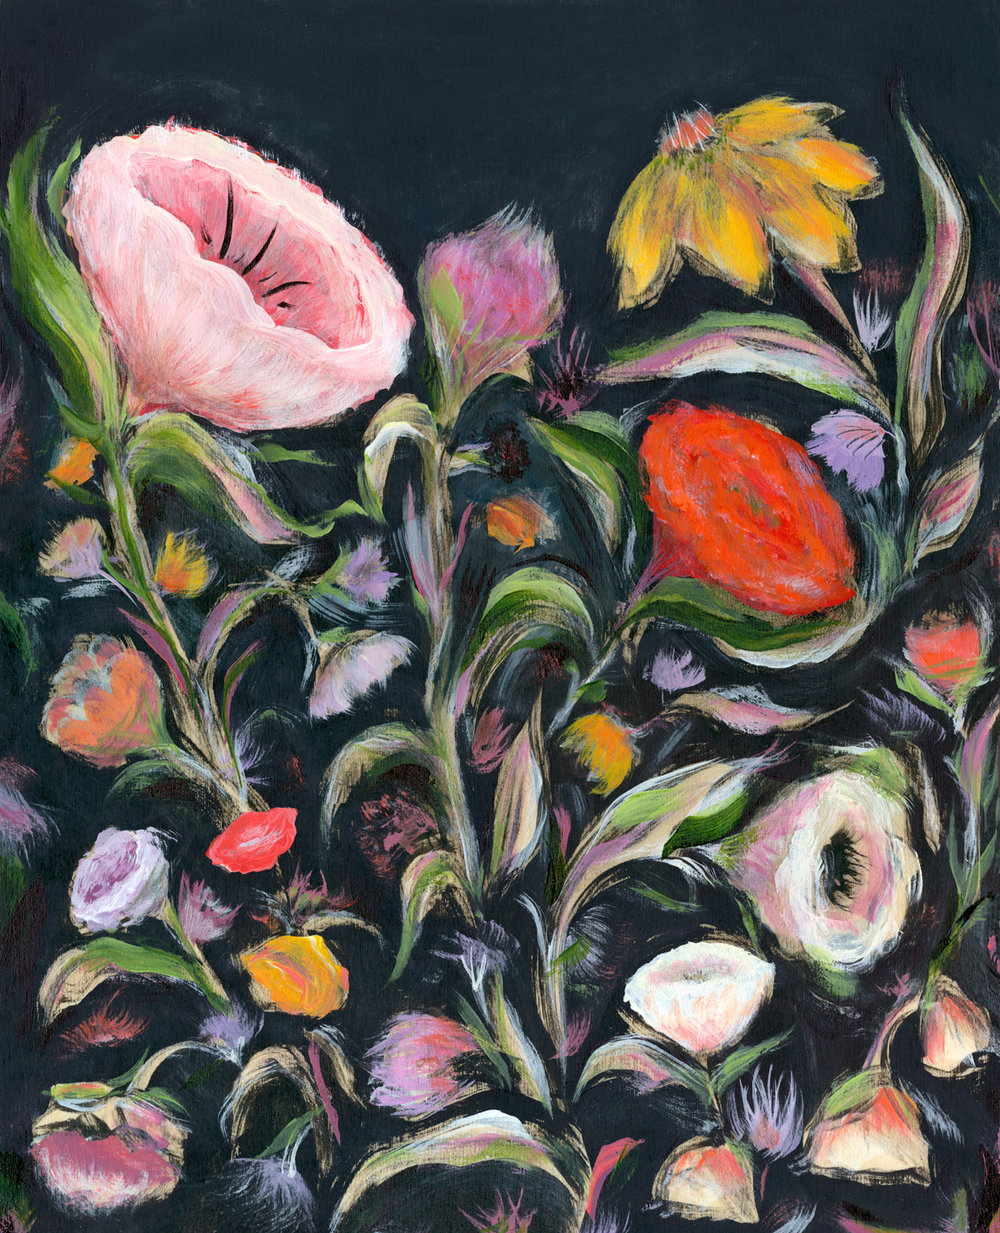 Allyn_Howard_garden_night.jpg